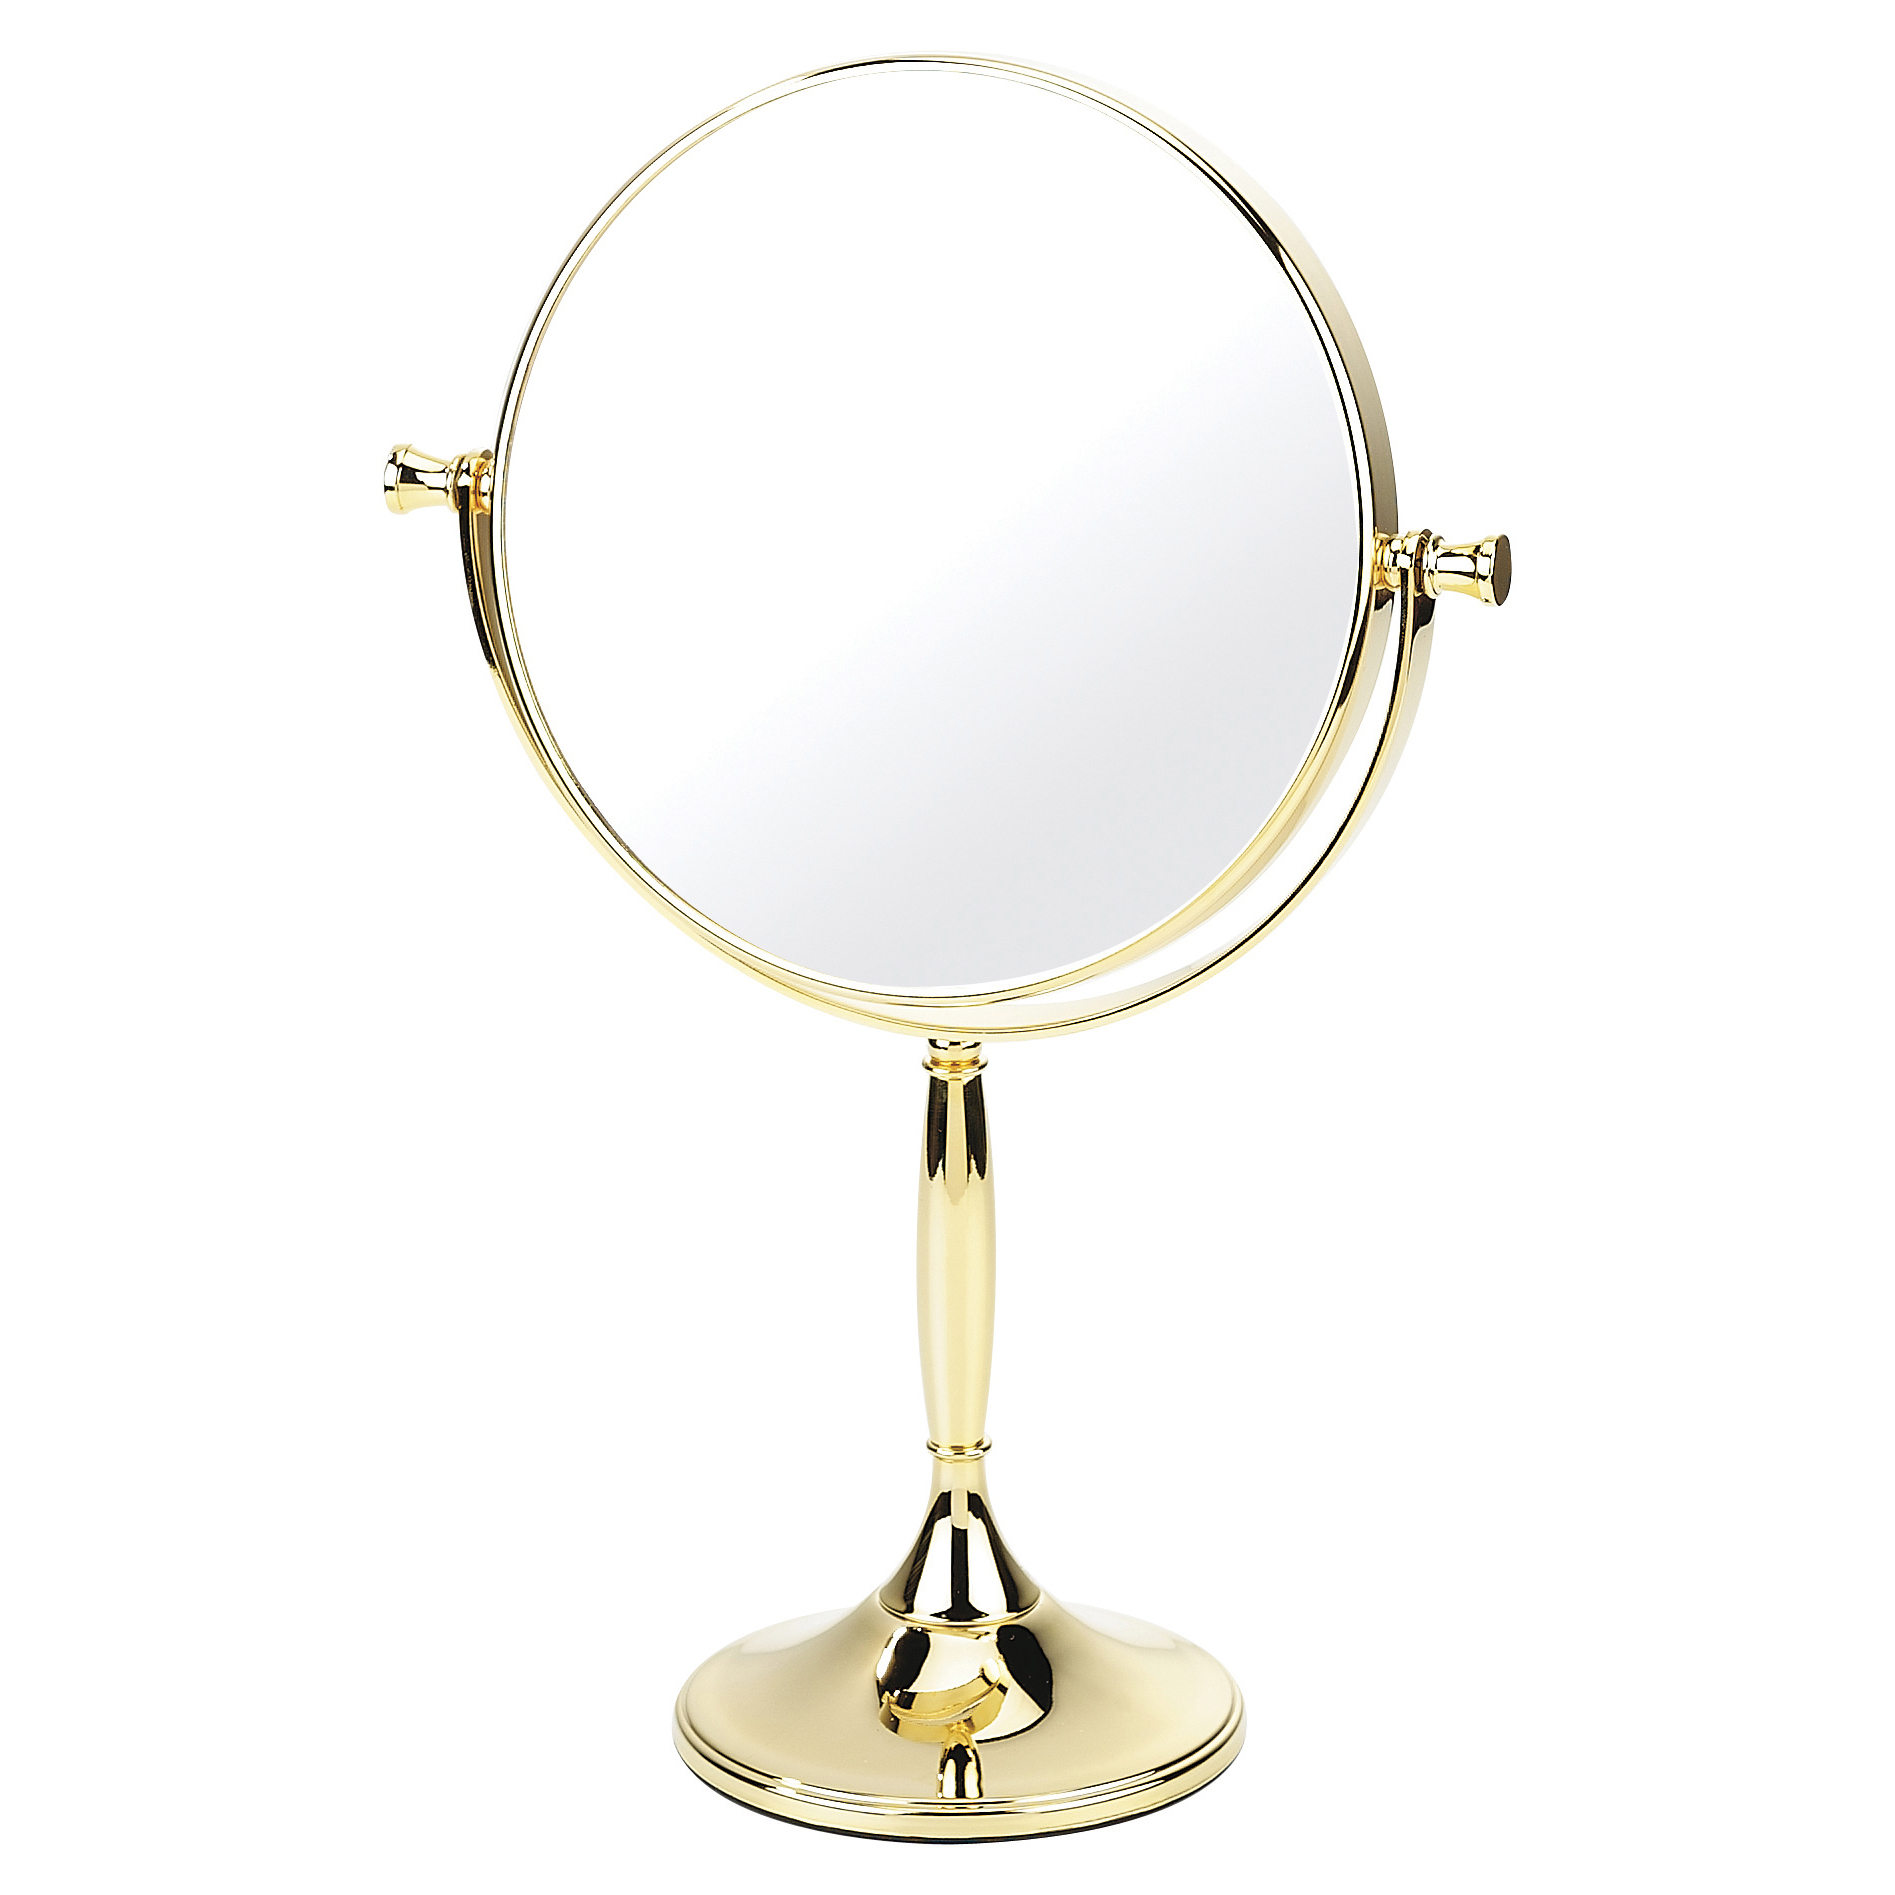 Gold pedestal shaving mirror 15cm x 3 magnification for Shaving mirror